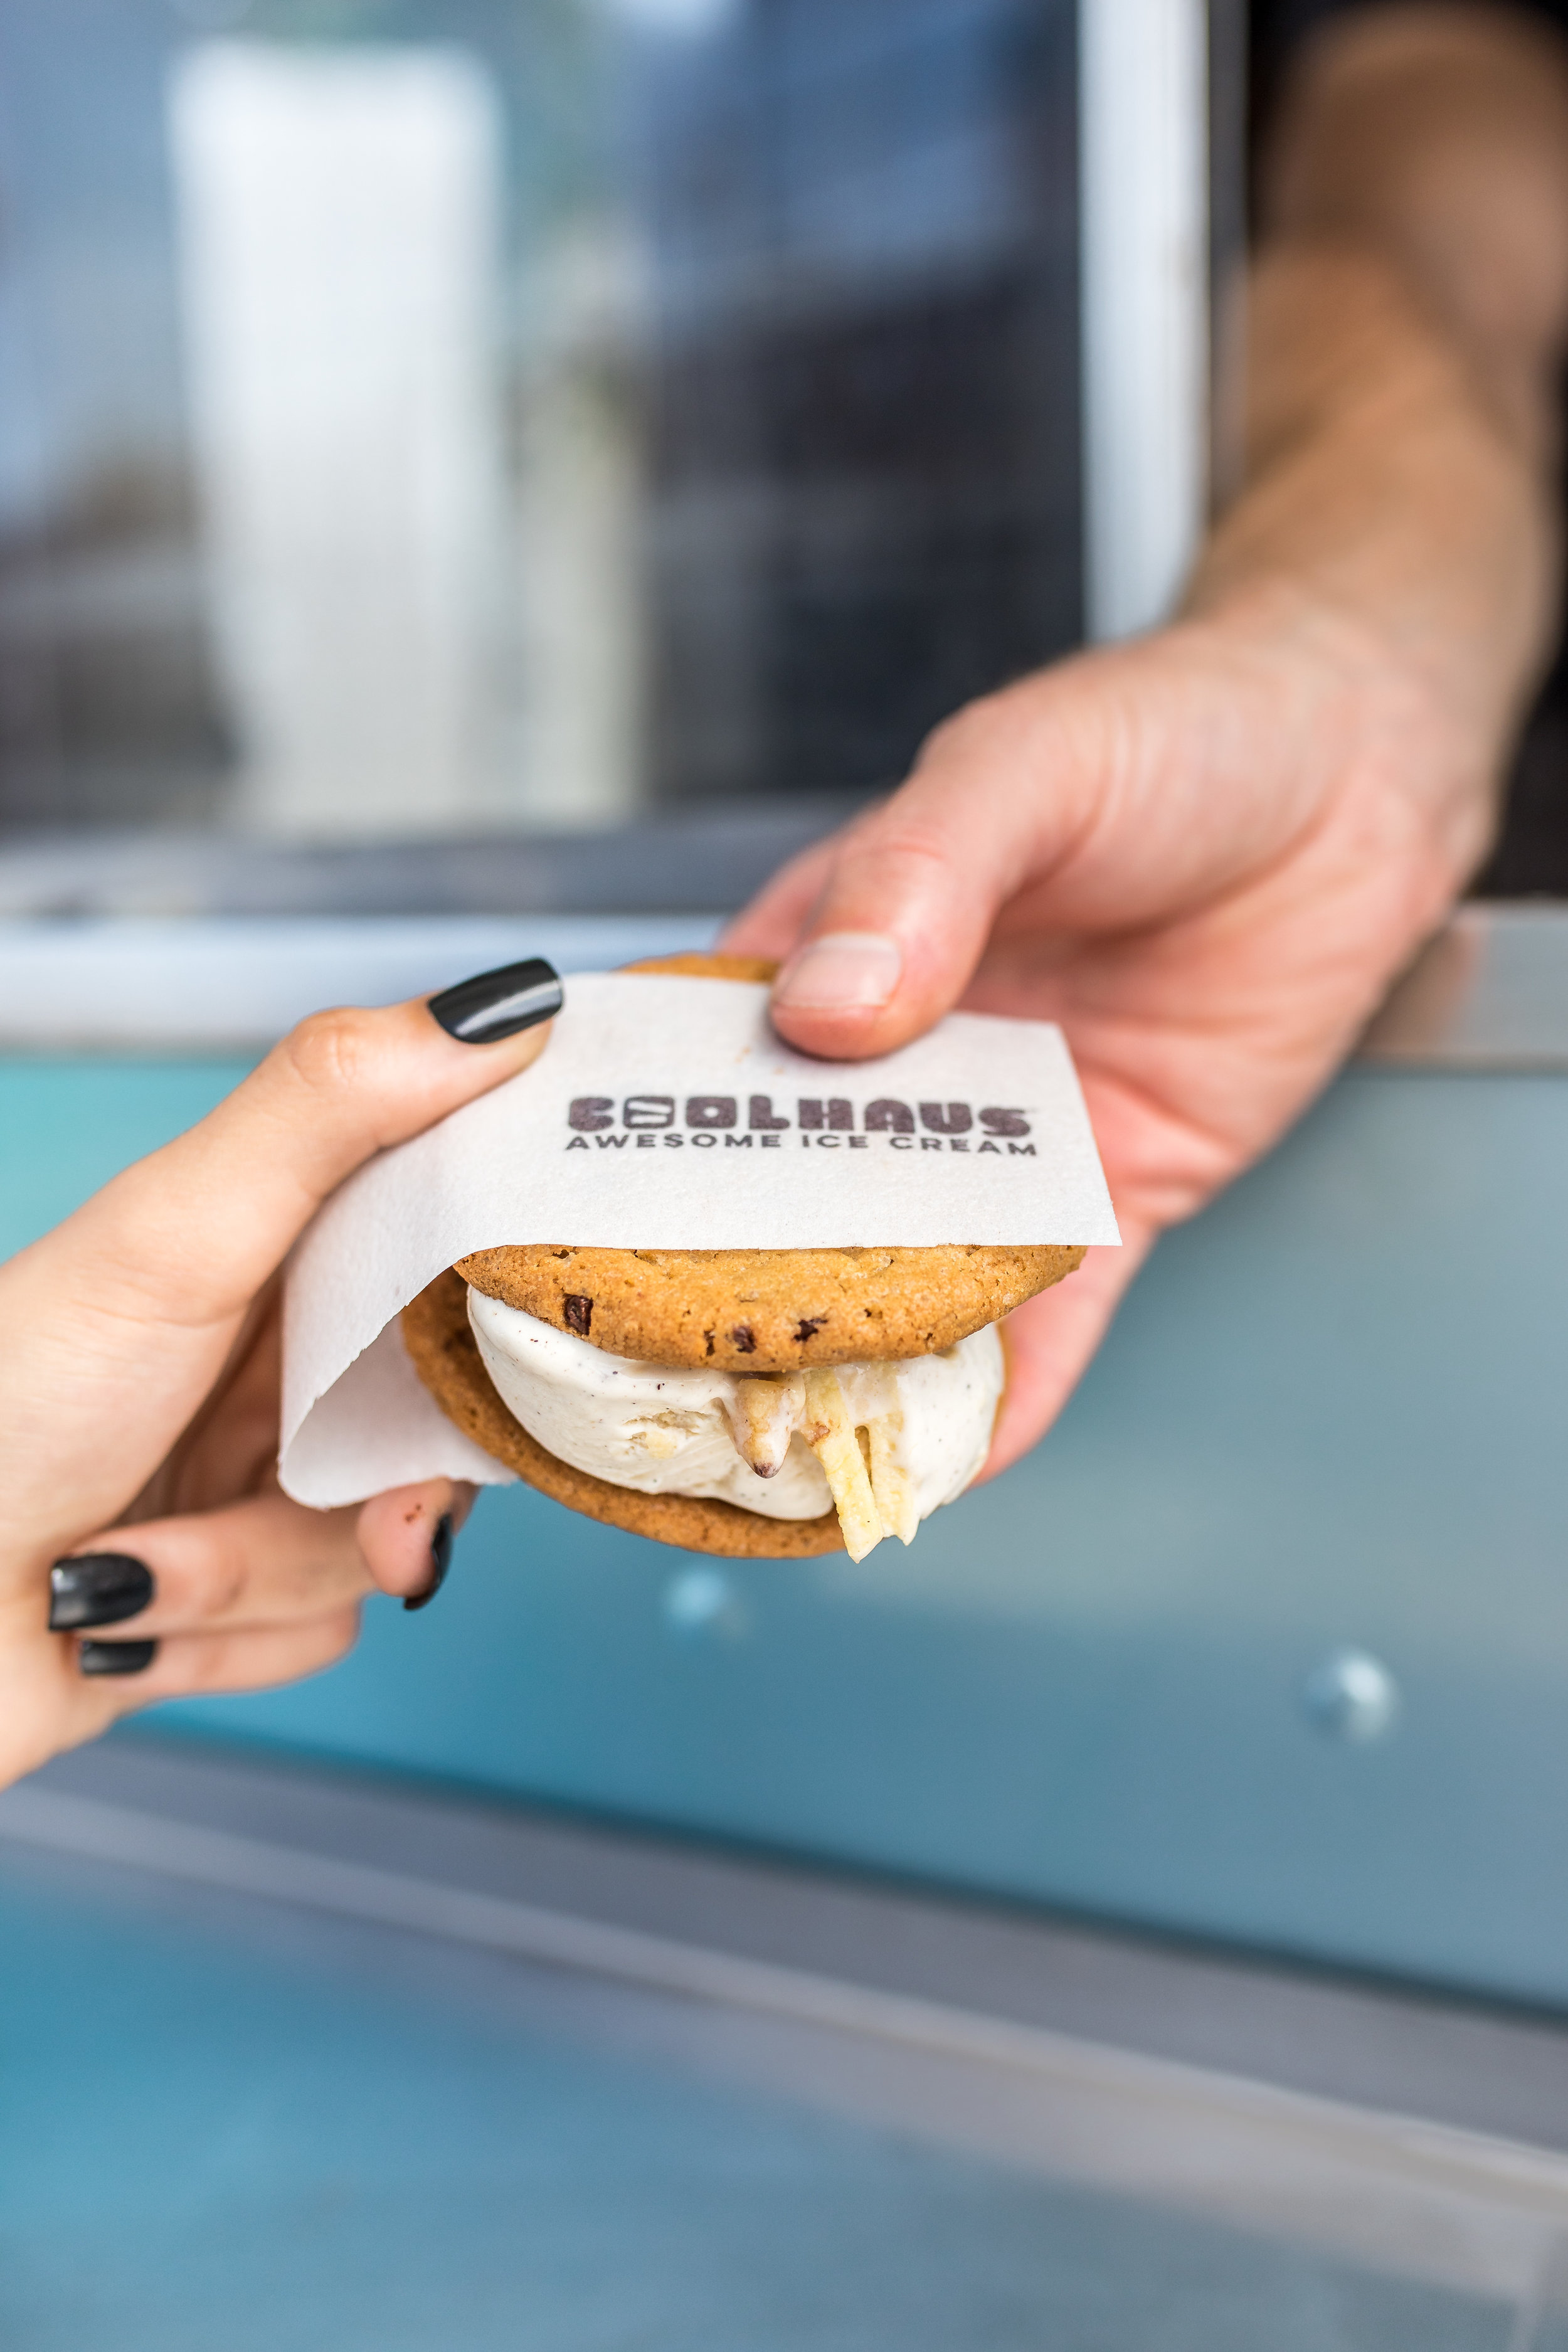 Coolhaus_S3_2018-34.JPG